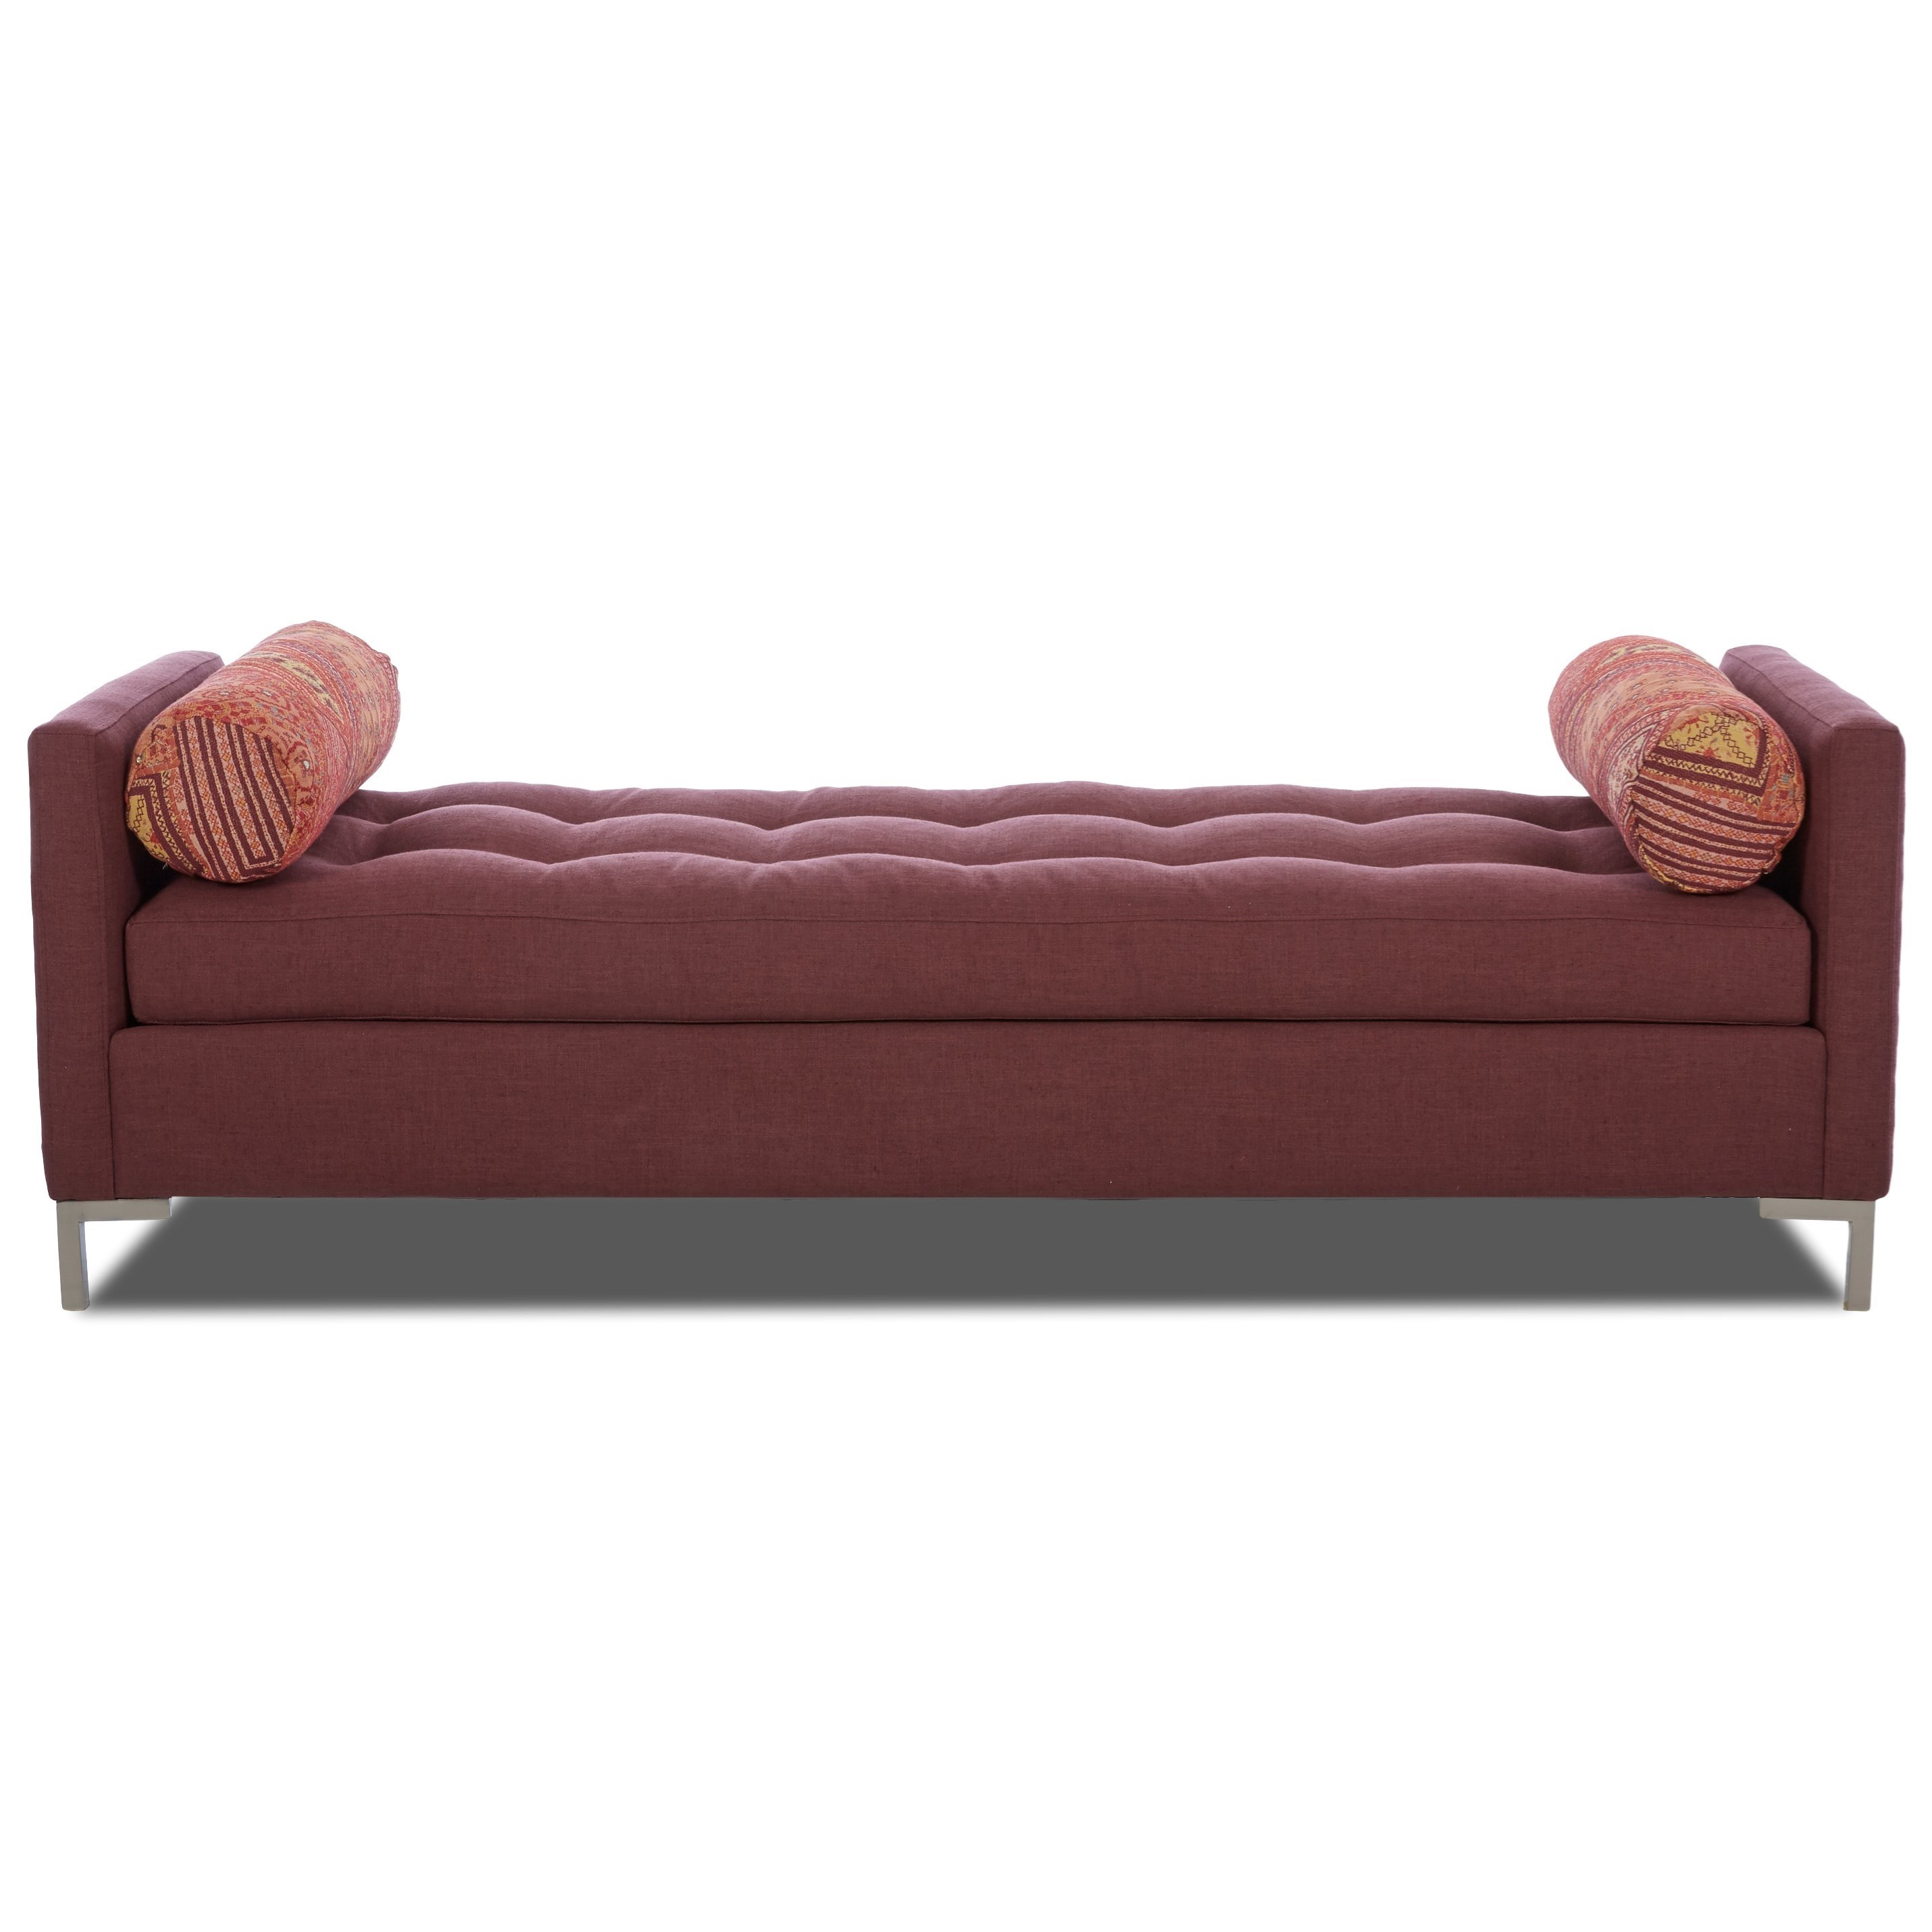 Uptown Klaussner Contemporary Bench by Klaussner at Lapeer Furniture & Mattress Center